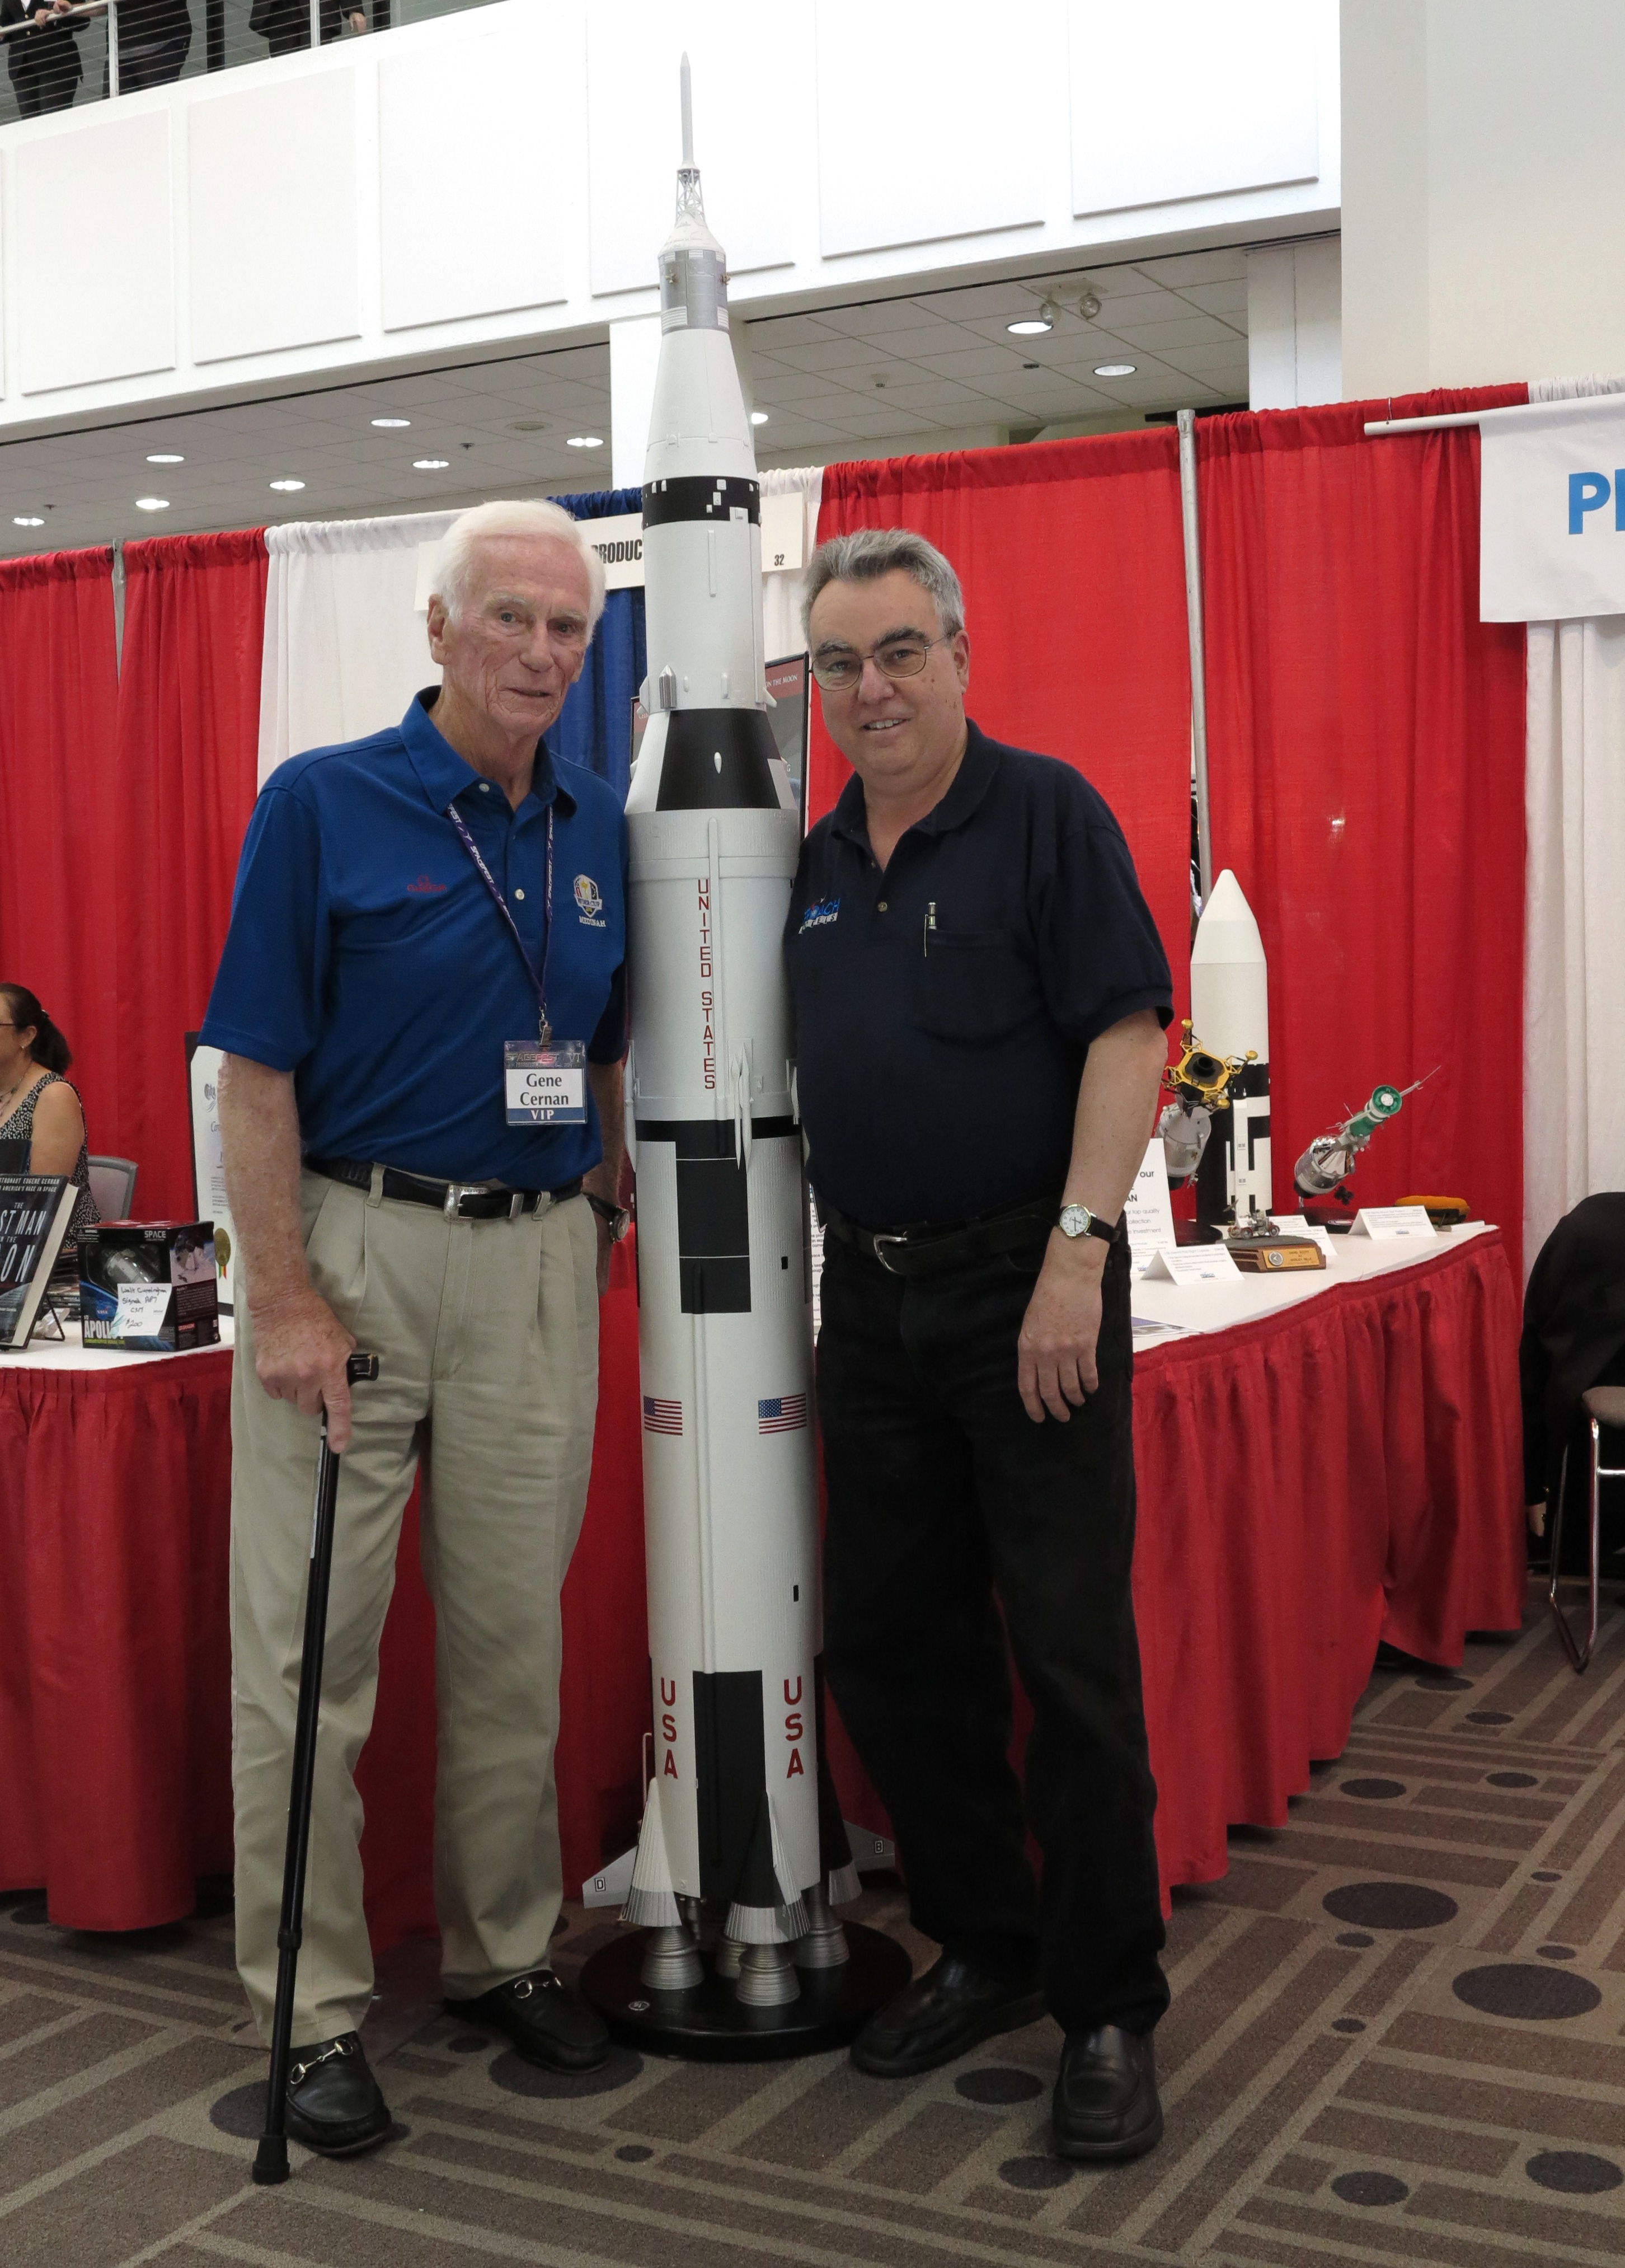 Nick Proach with Gene Cernan